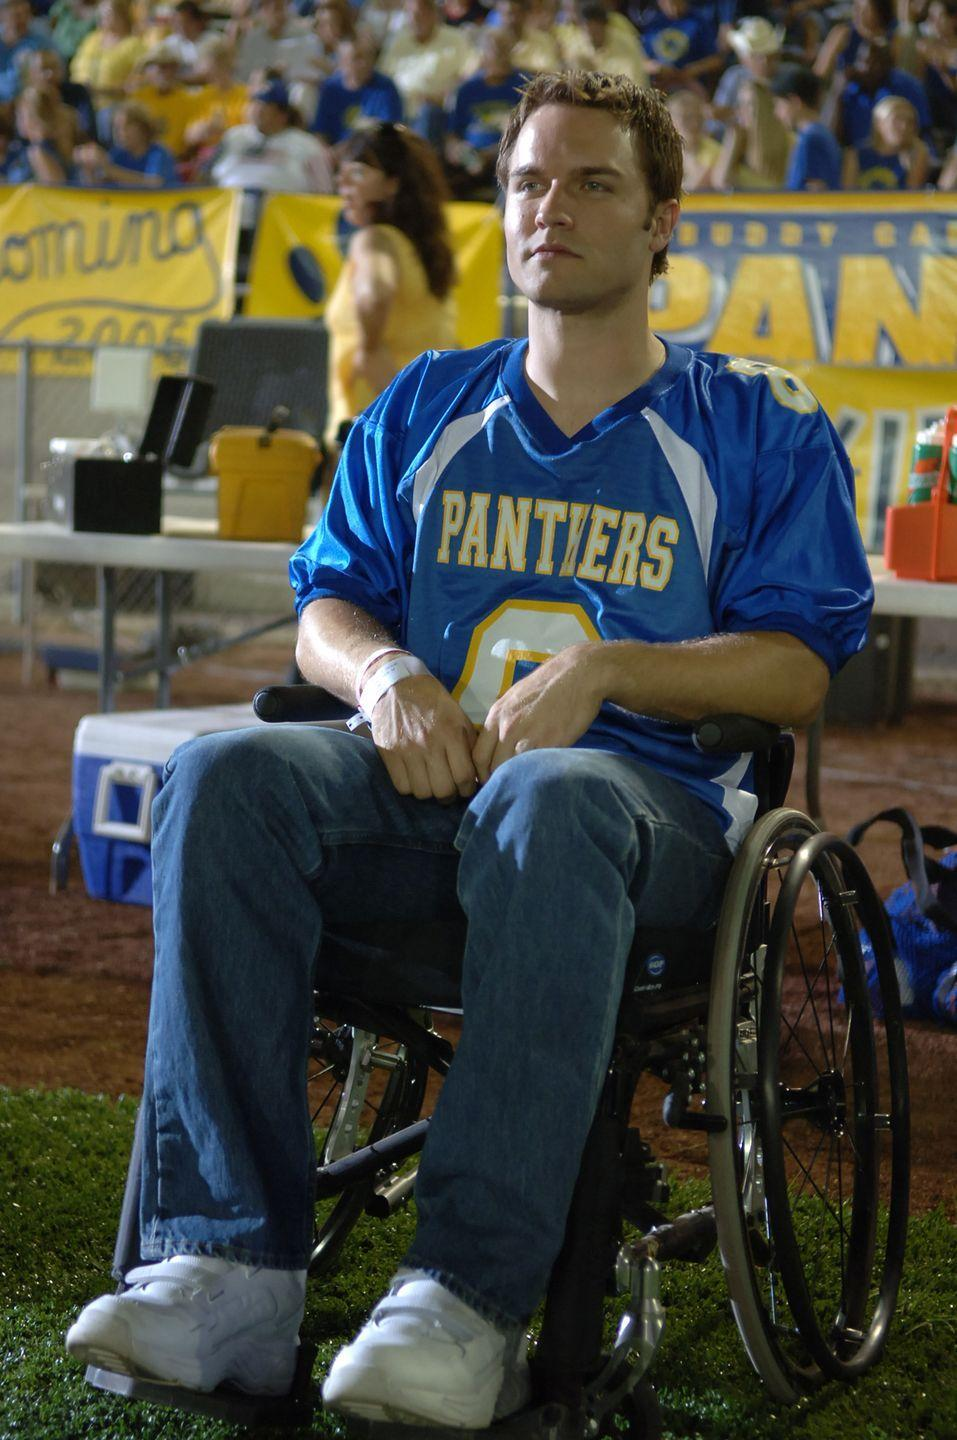 <p>As Jason Street, he was the star quarterback of the Dillon Panthers until a freak accident the first game of his senior year left him paralyzed from the waist down. The character eventually moves to New Jersey to be with his wife and son in the third season. </p><p>Prior to accepting the role, Scott Porter had small parts in various television shows and films, including <em>Ugly Betty</em> and <em>As the World Turns</em>.</p>